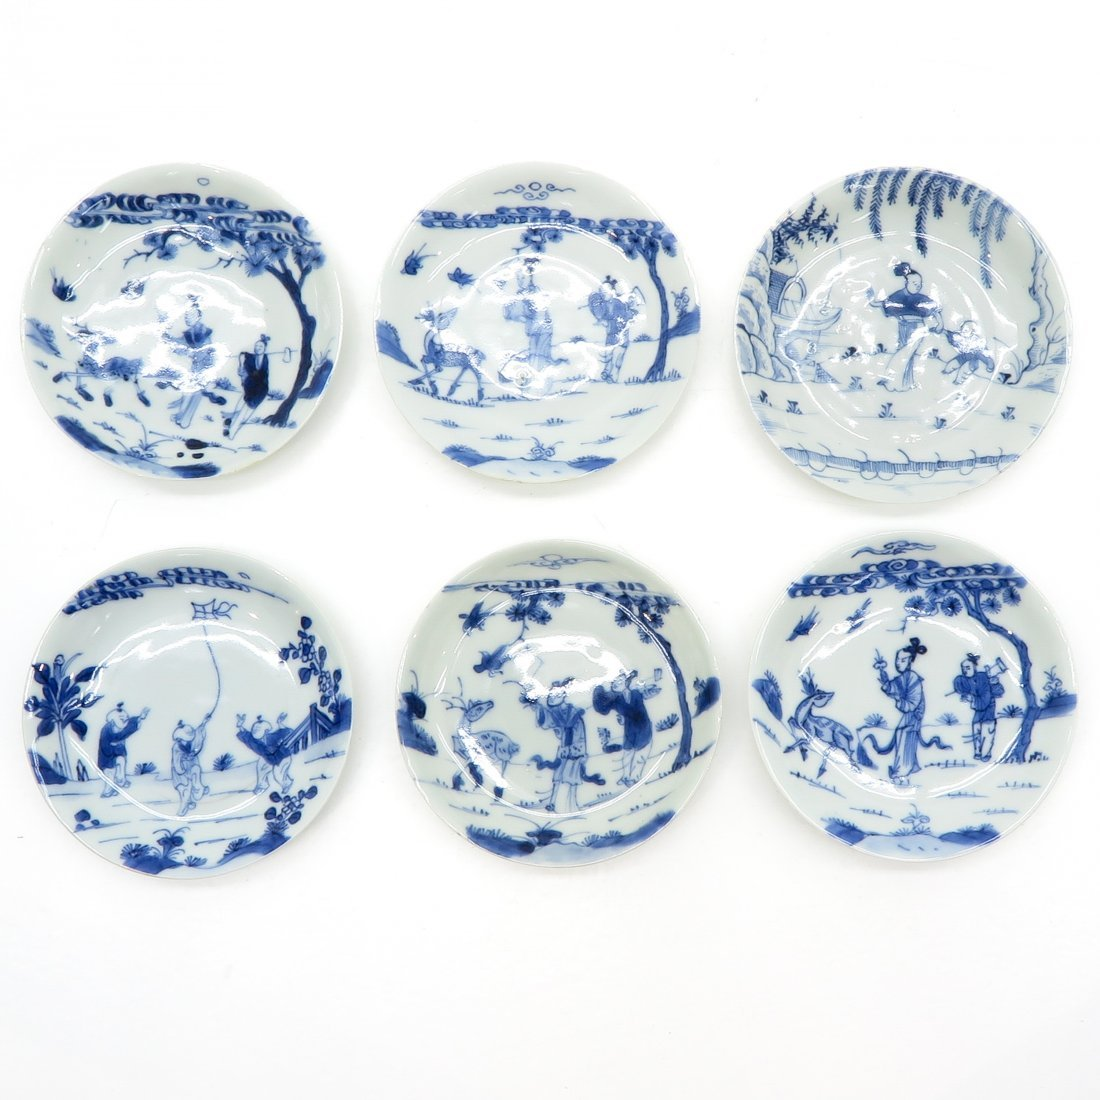 Lot of 6 18th Century China Porcelain Saucers